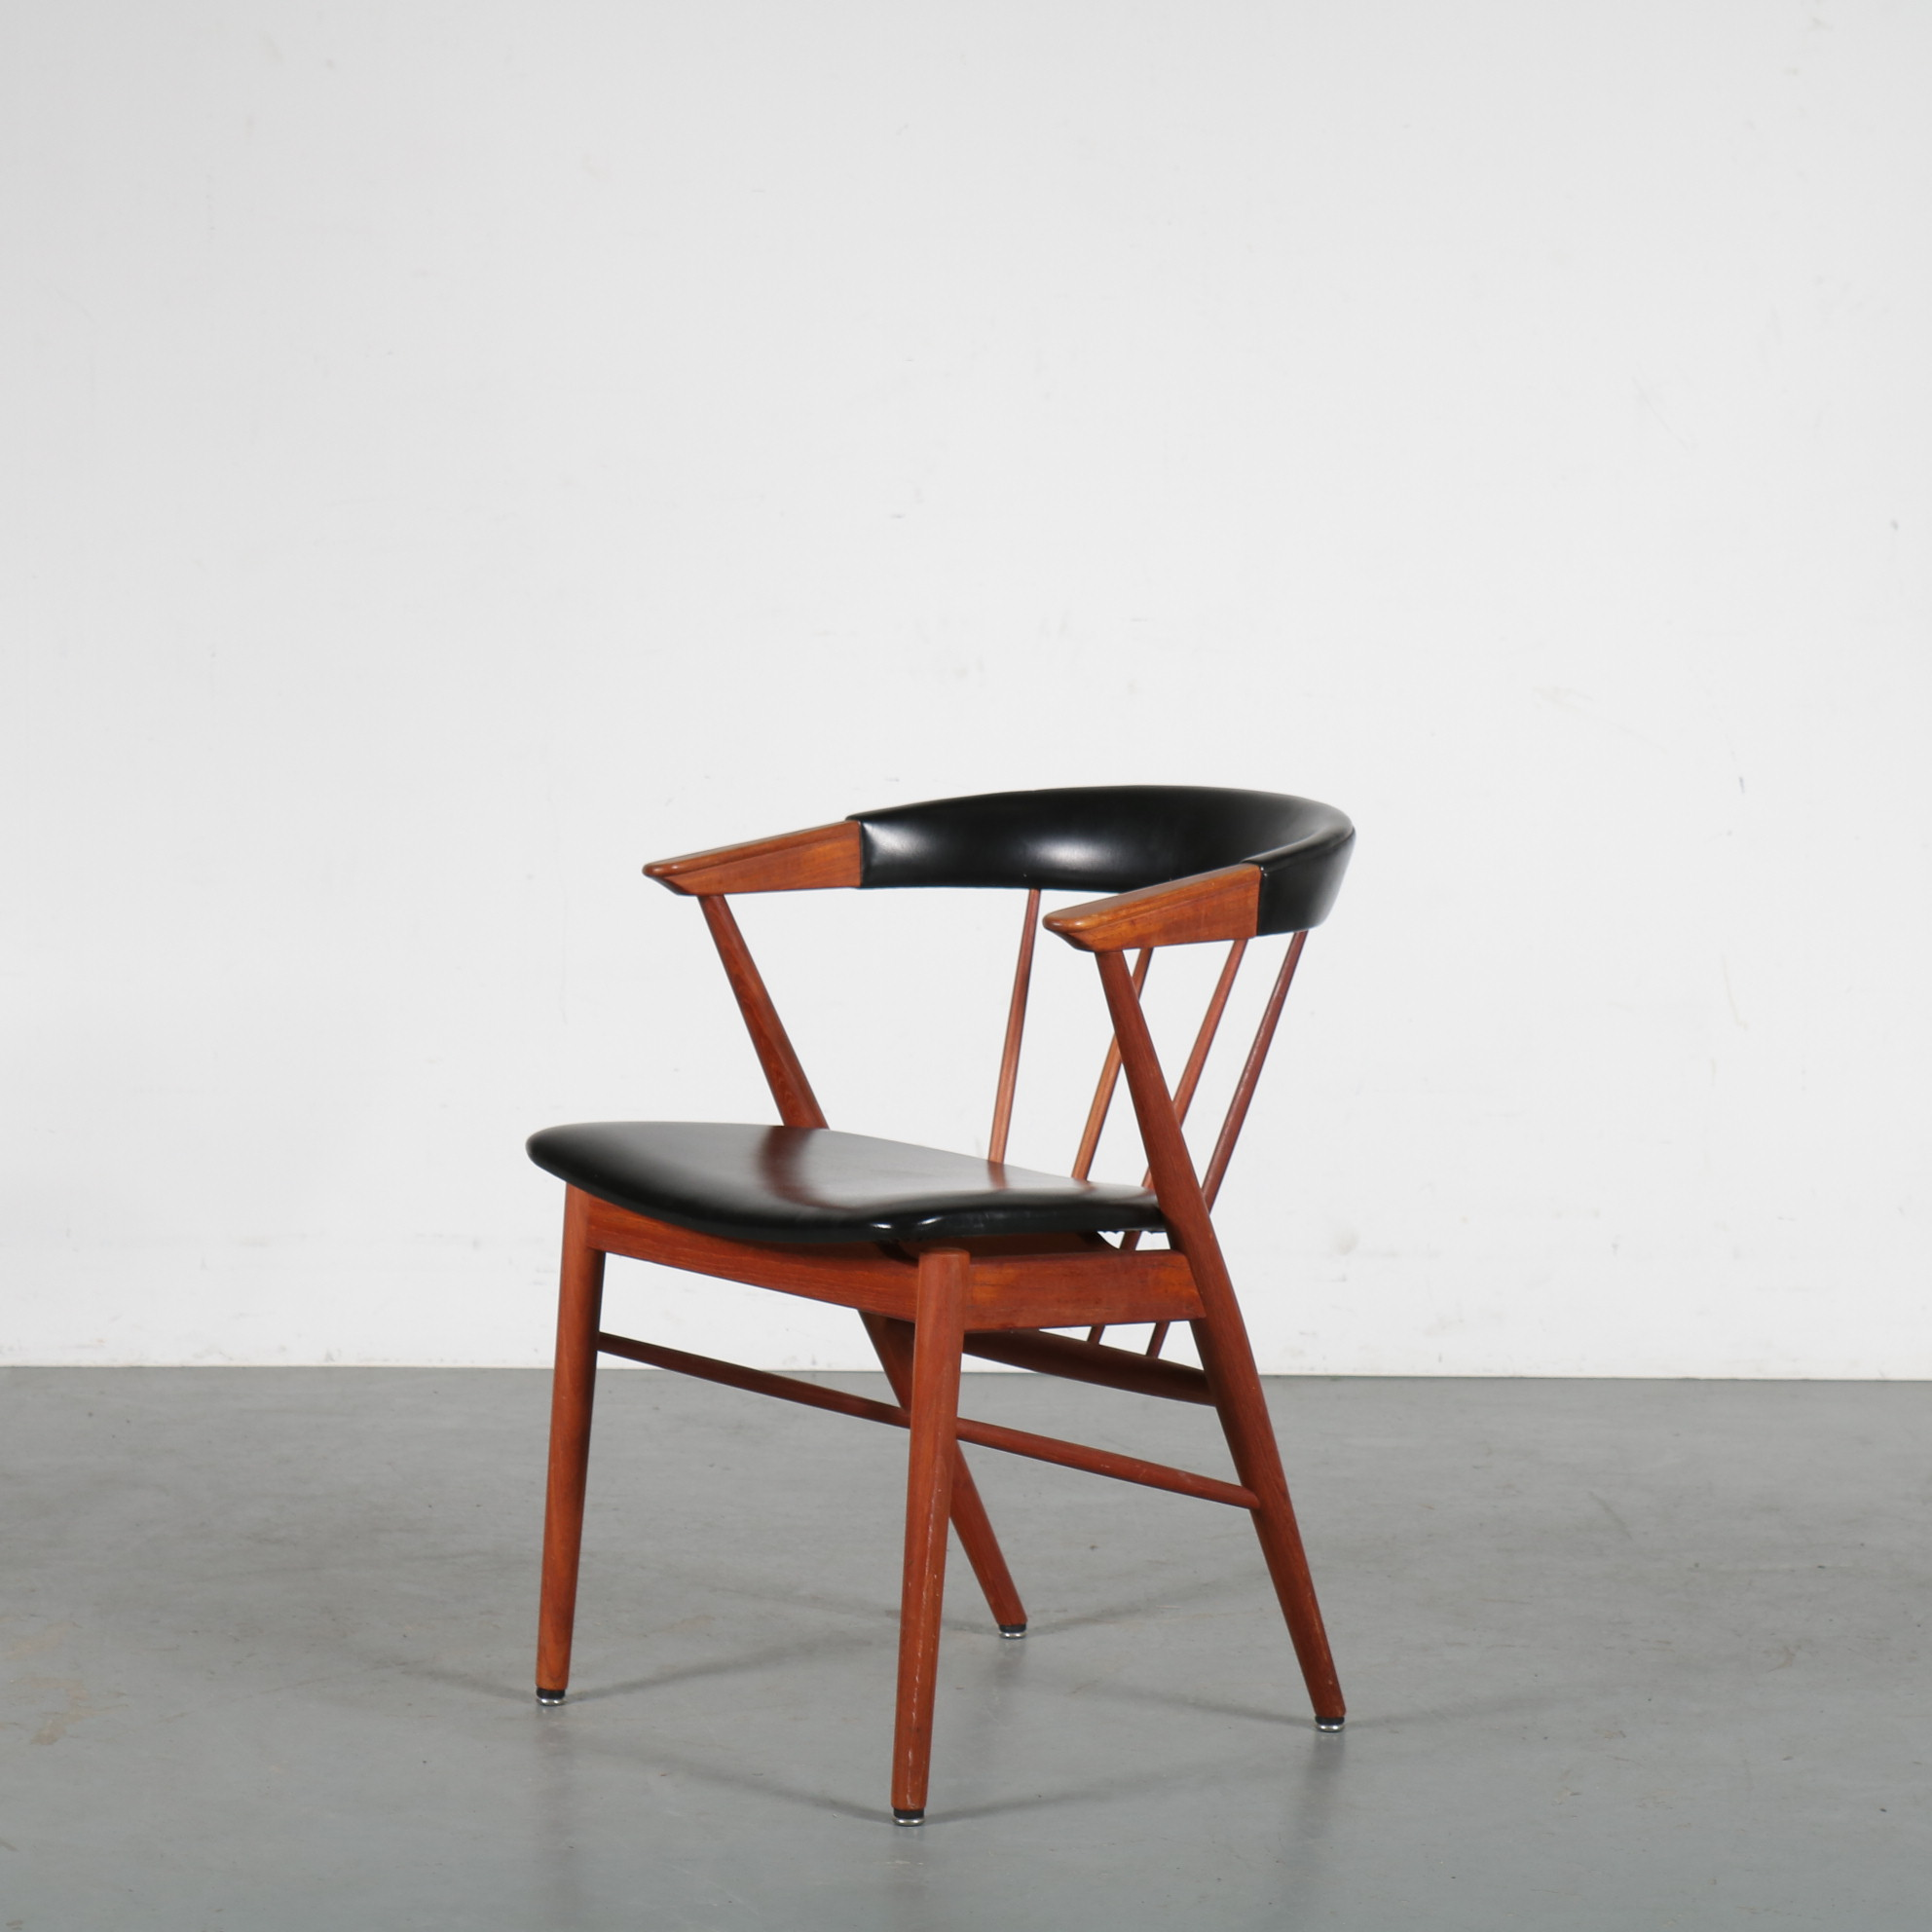 INC68 1950s Danish side chair in teak with black skai upholstery Paul Helge Siebast Sibast / Denmark